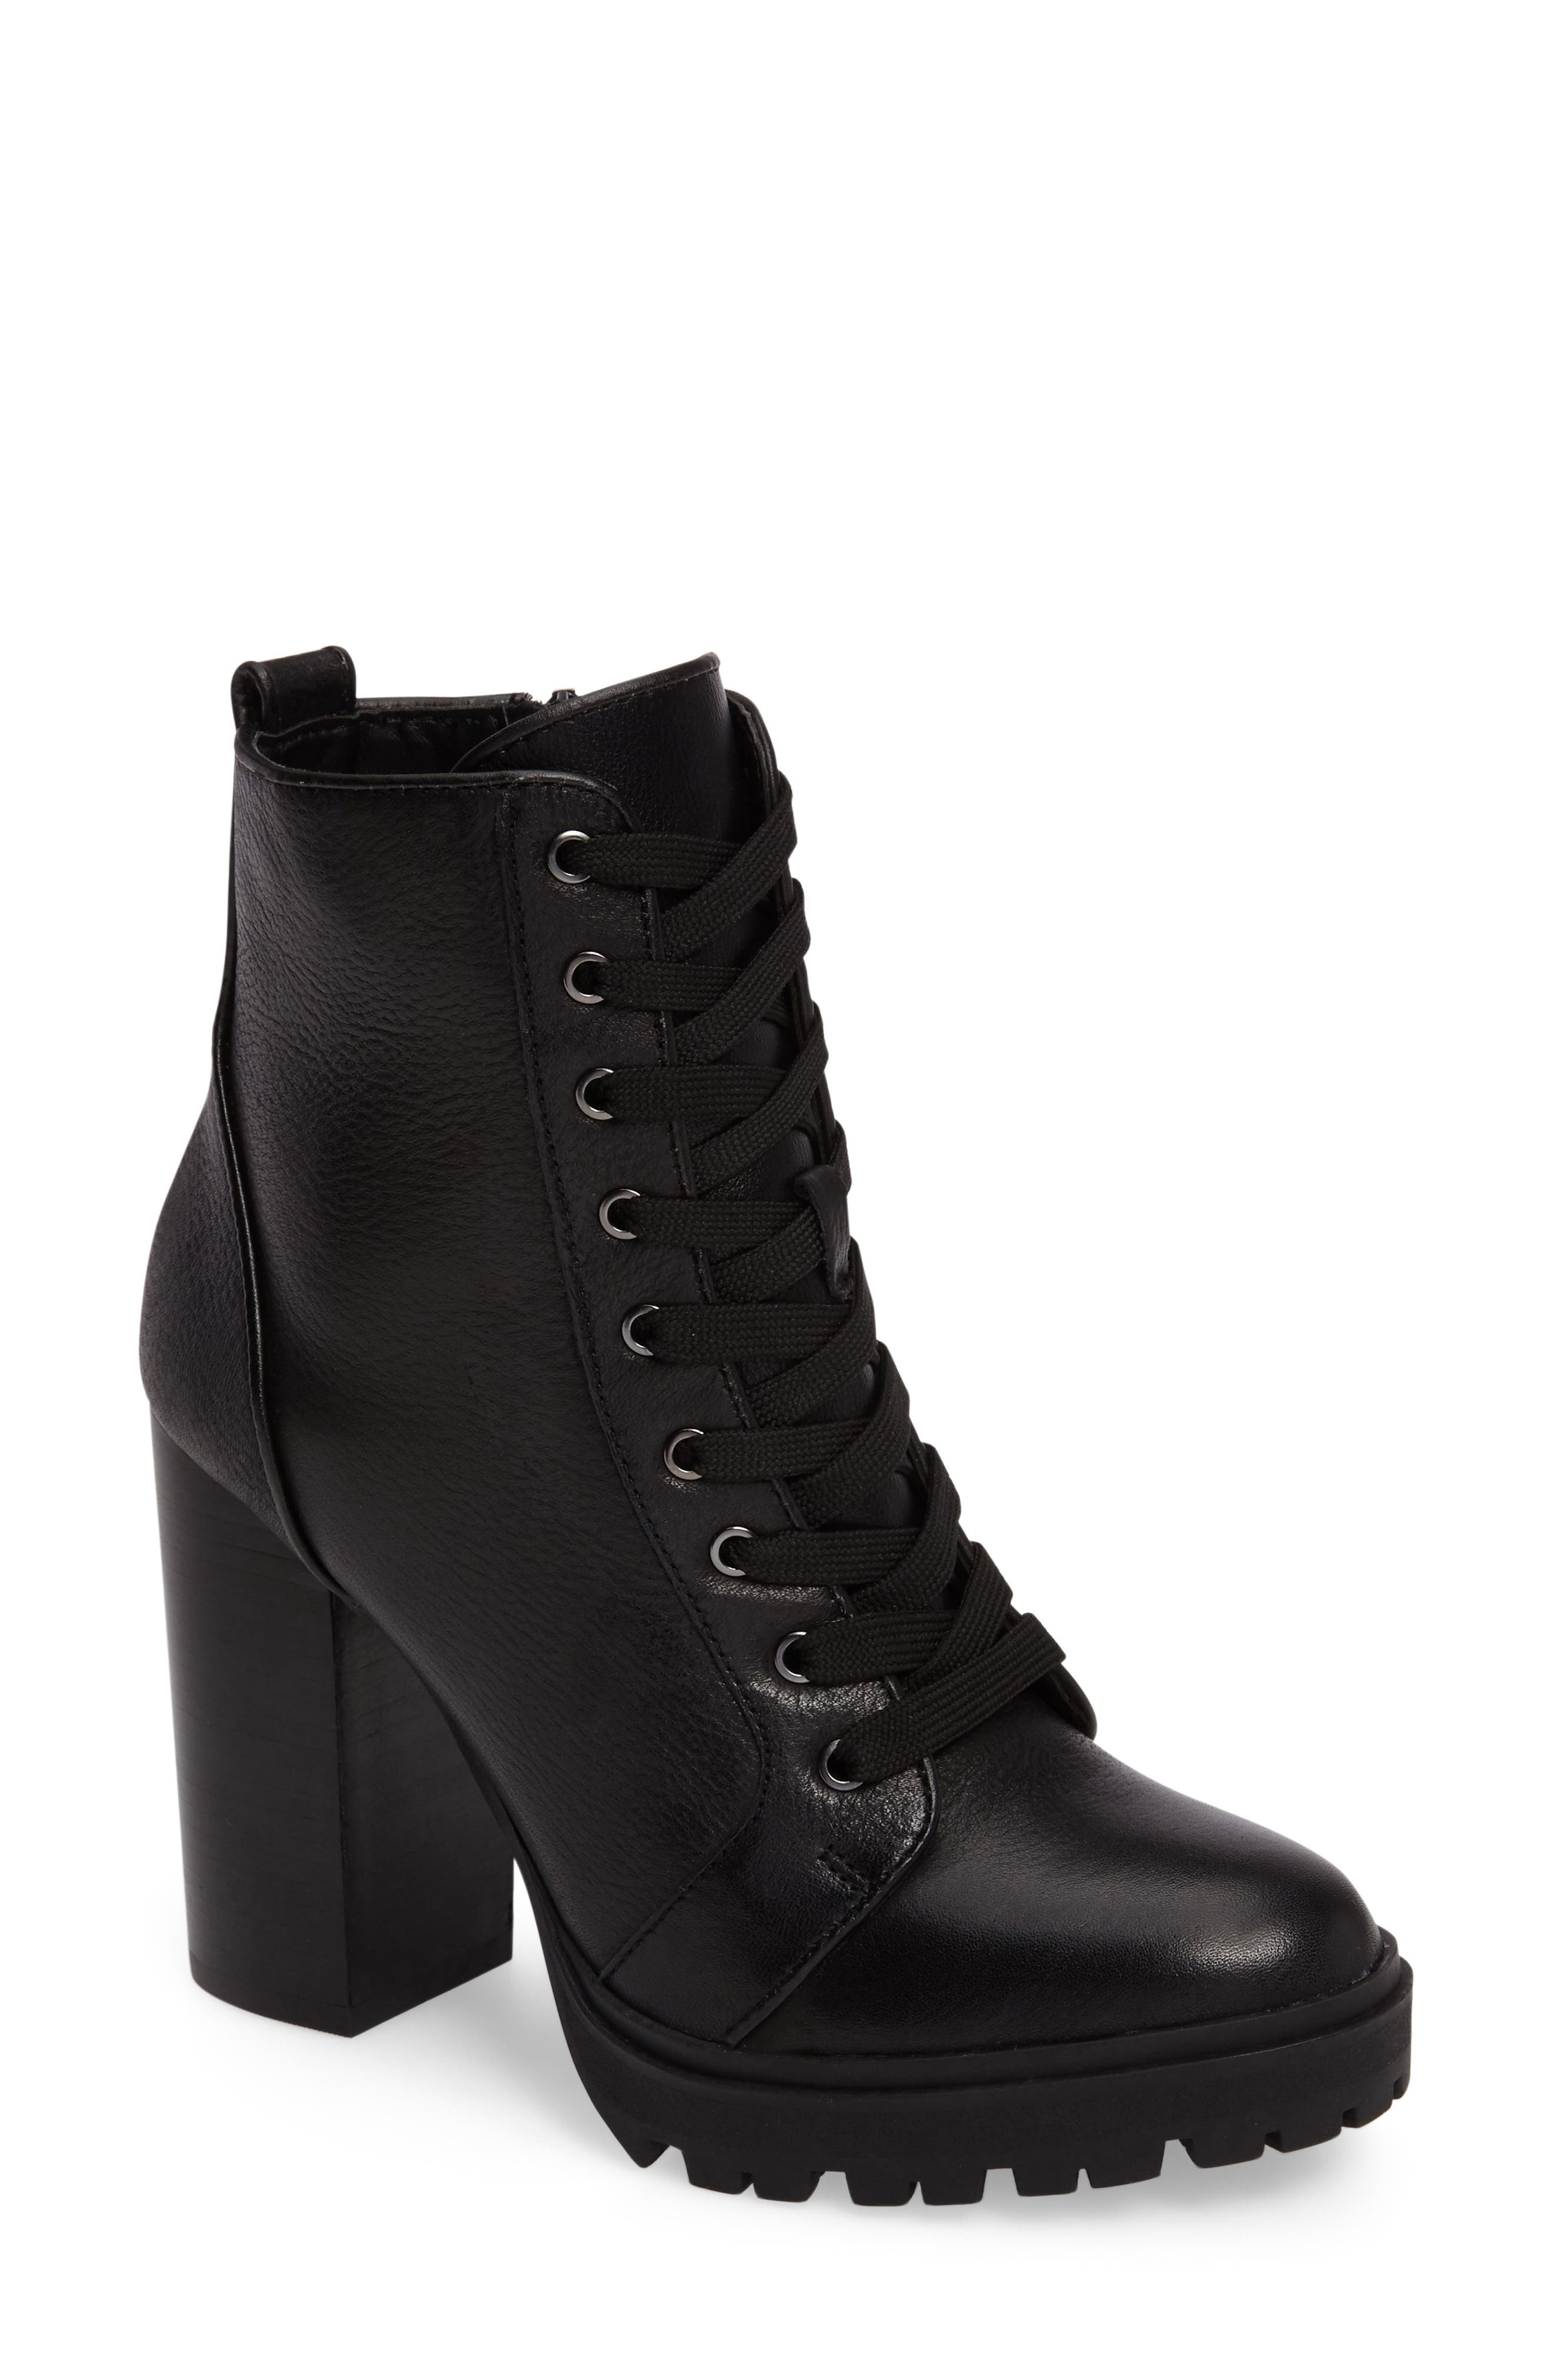 Women's Lace Up Ankle Boots & Booties | Nordstrom